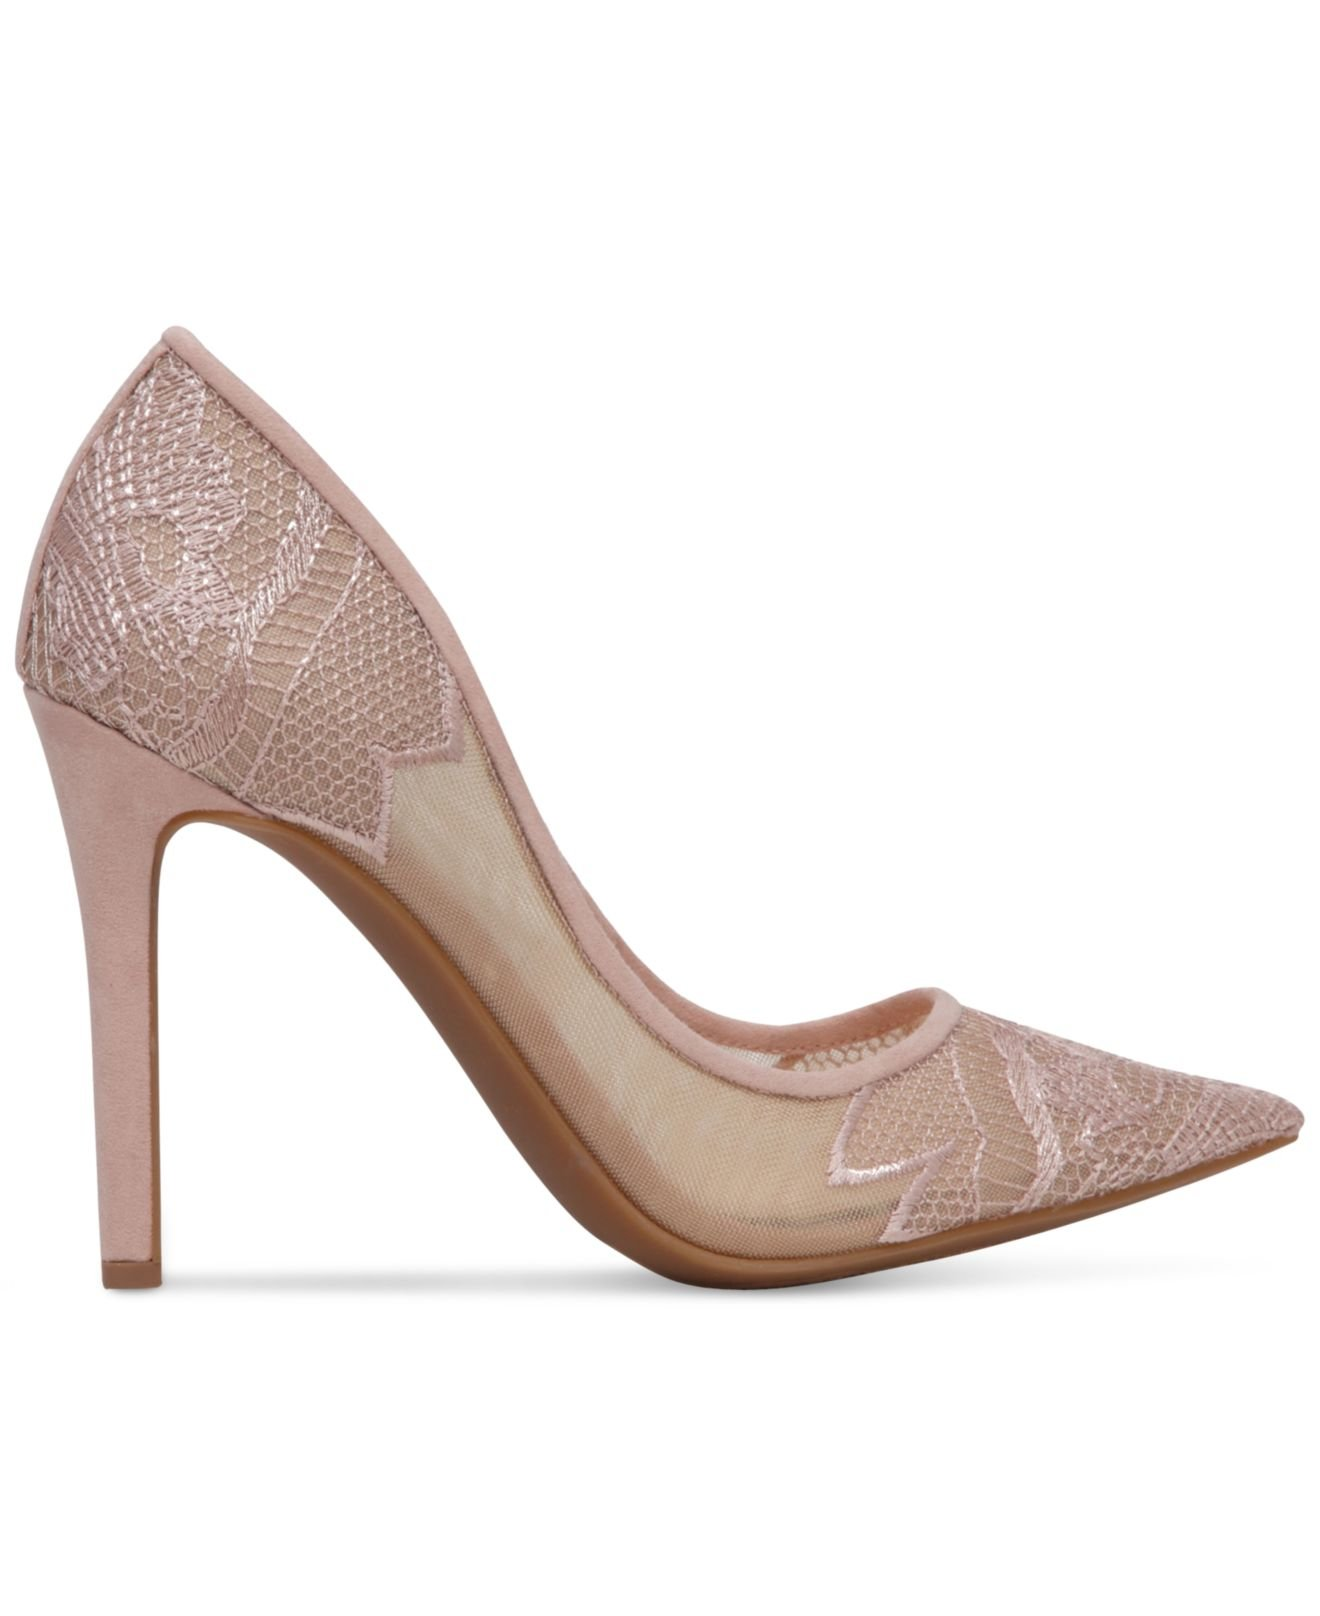 ad95d0c7529 Jessica Simpson Natural Camba Lace Pointed-toe Pumps